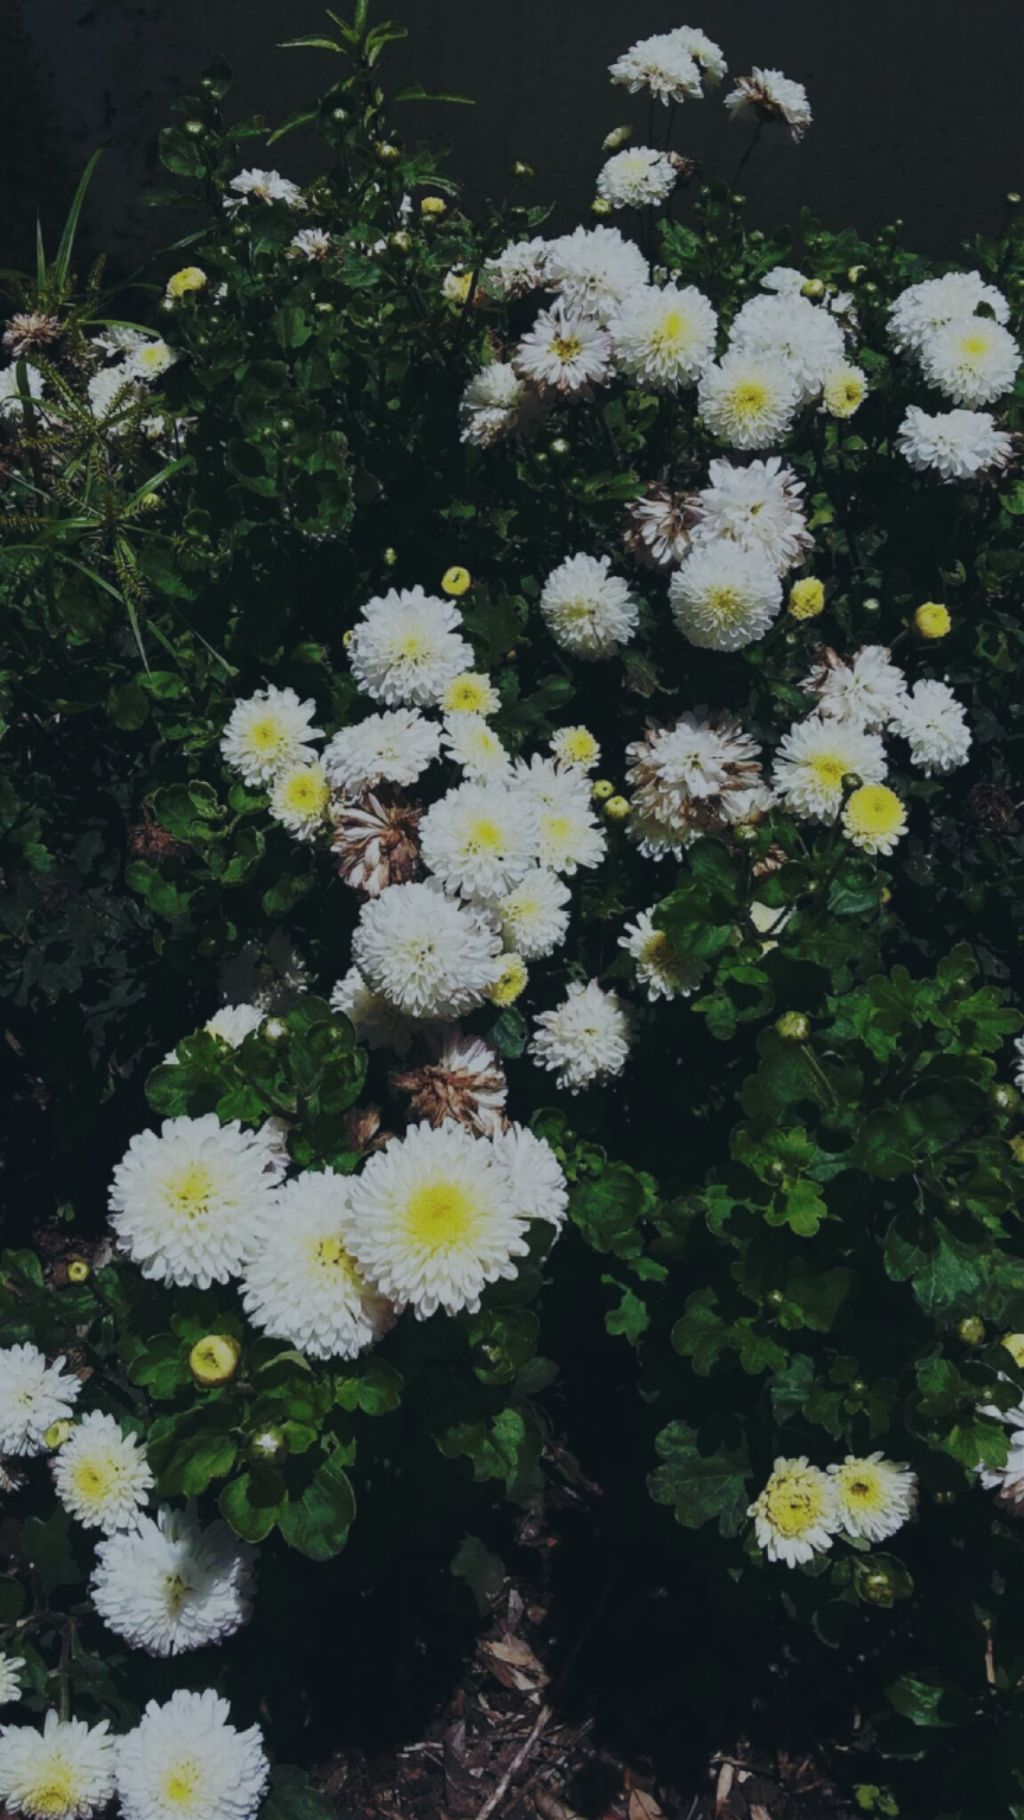 Flowers pale tumblr grunge aesthetic sad tumblrgirl flowers pale tumblr grunge aesthetic sad tumblrgirl izmirmasajfo